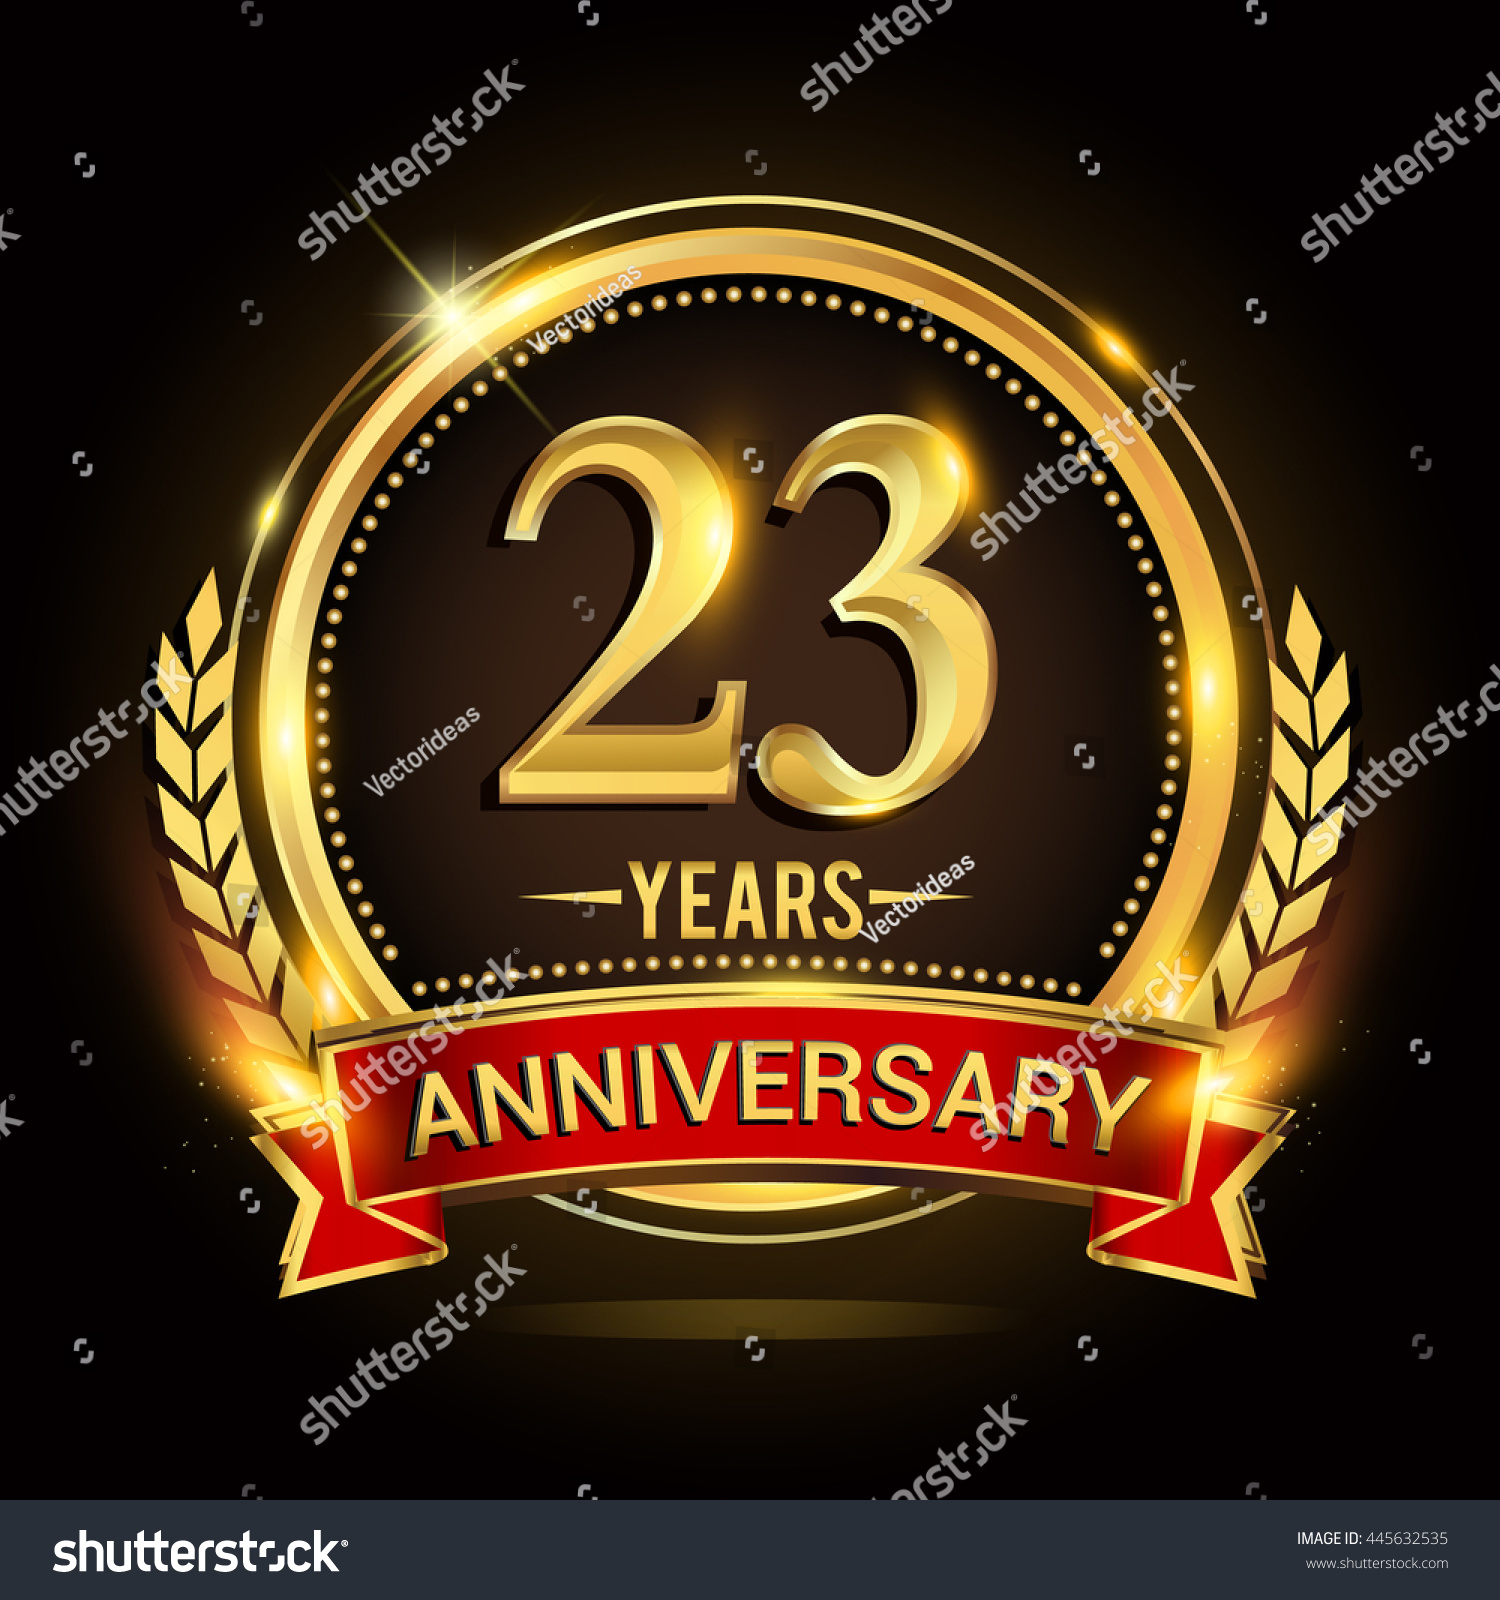 Celebrating 23 Years Anniversary Logo Golden Stock Vector Royalty